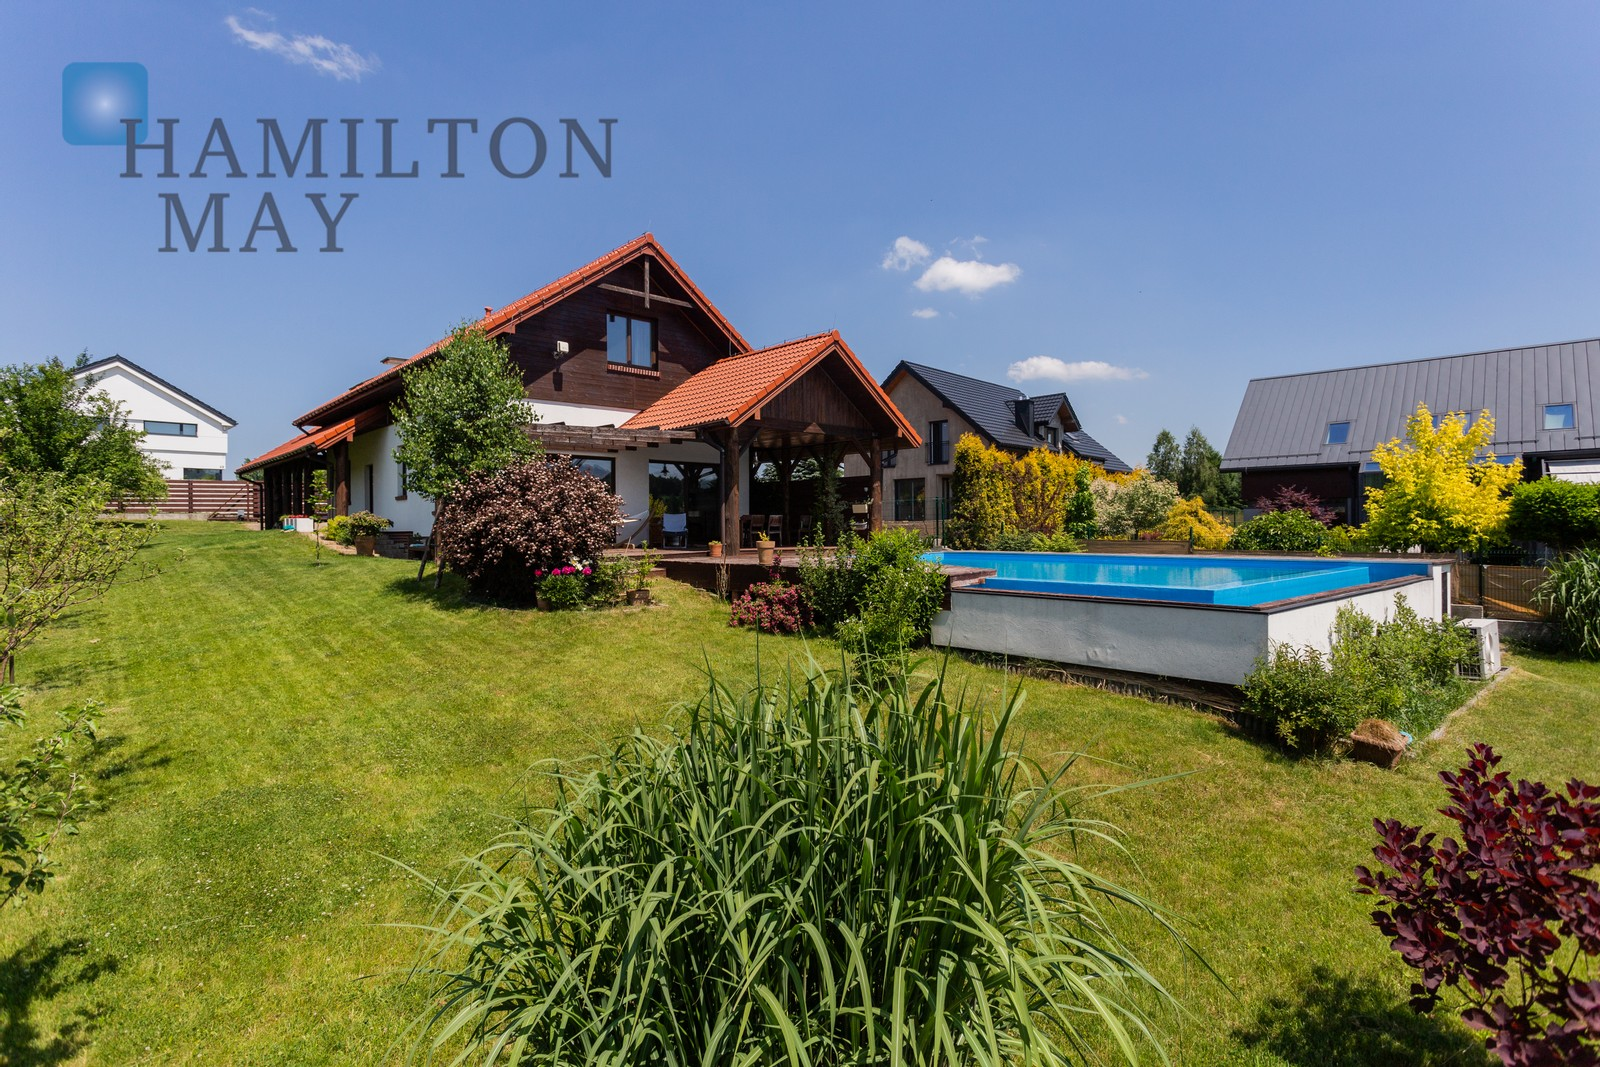 A modern house with a swimming pool in Gaj Krakow for sale